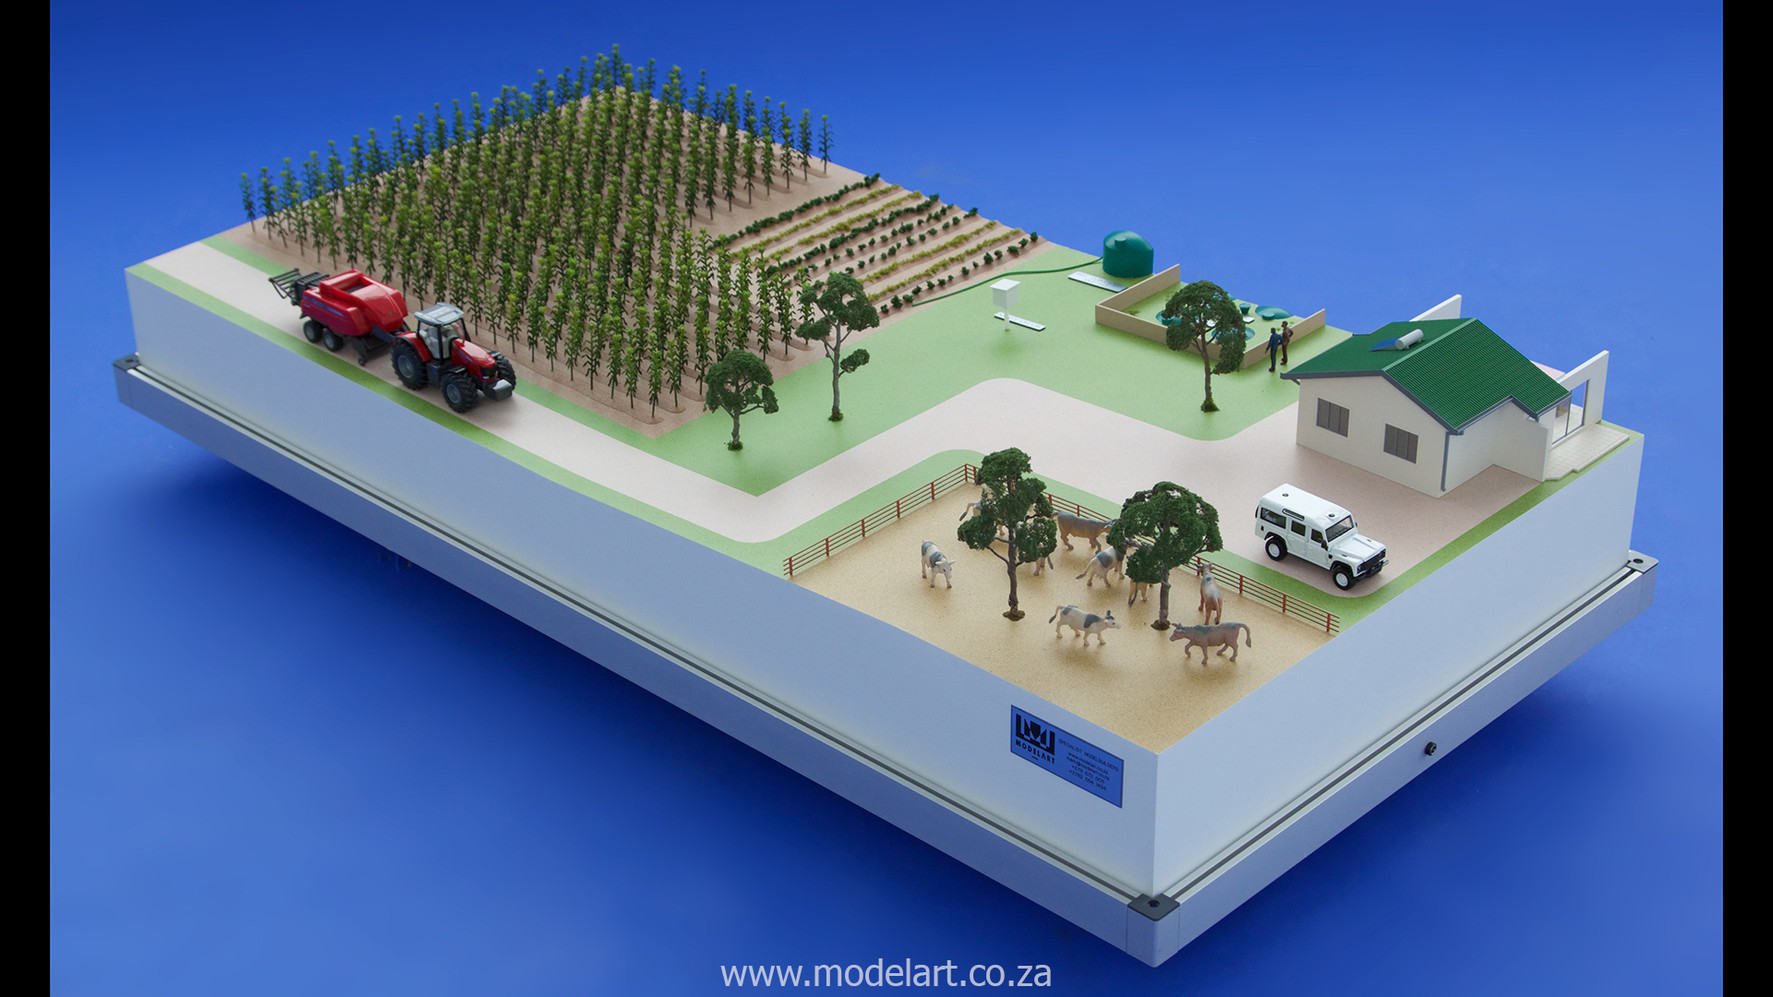 Architectural-Scale-Model-Industrial-Afgri Biogas-1